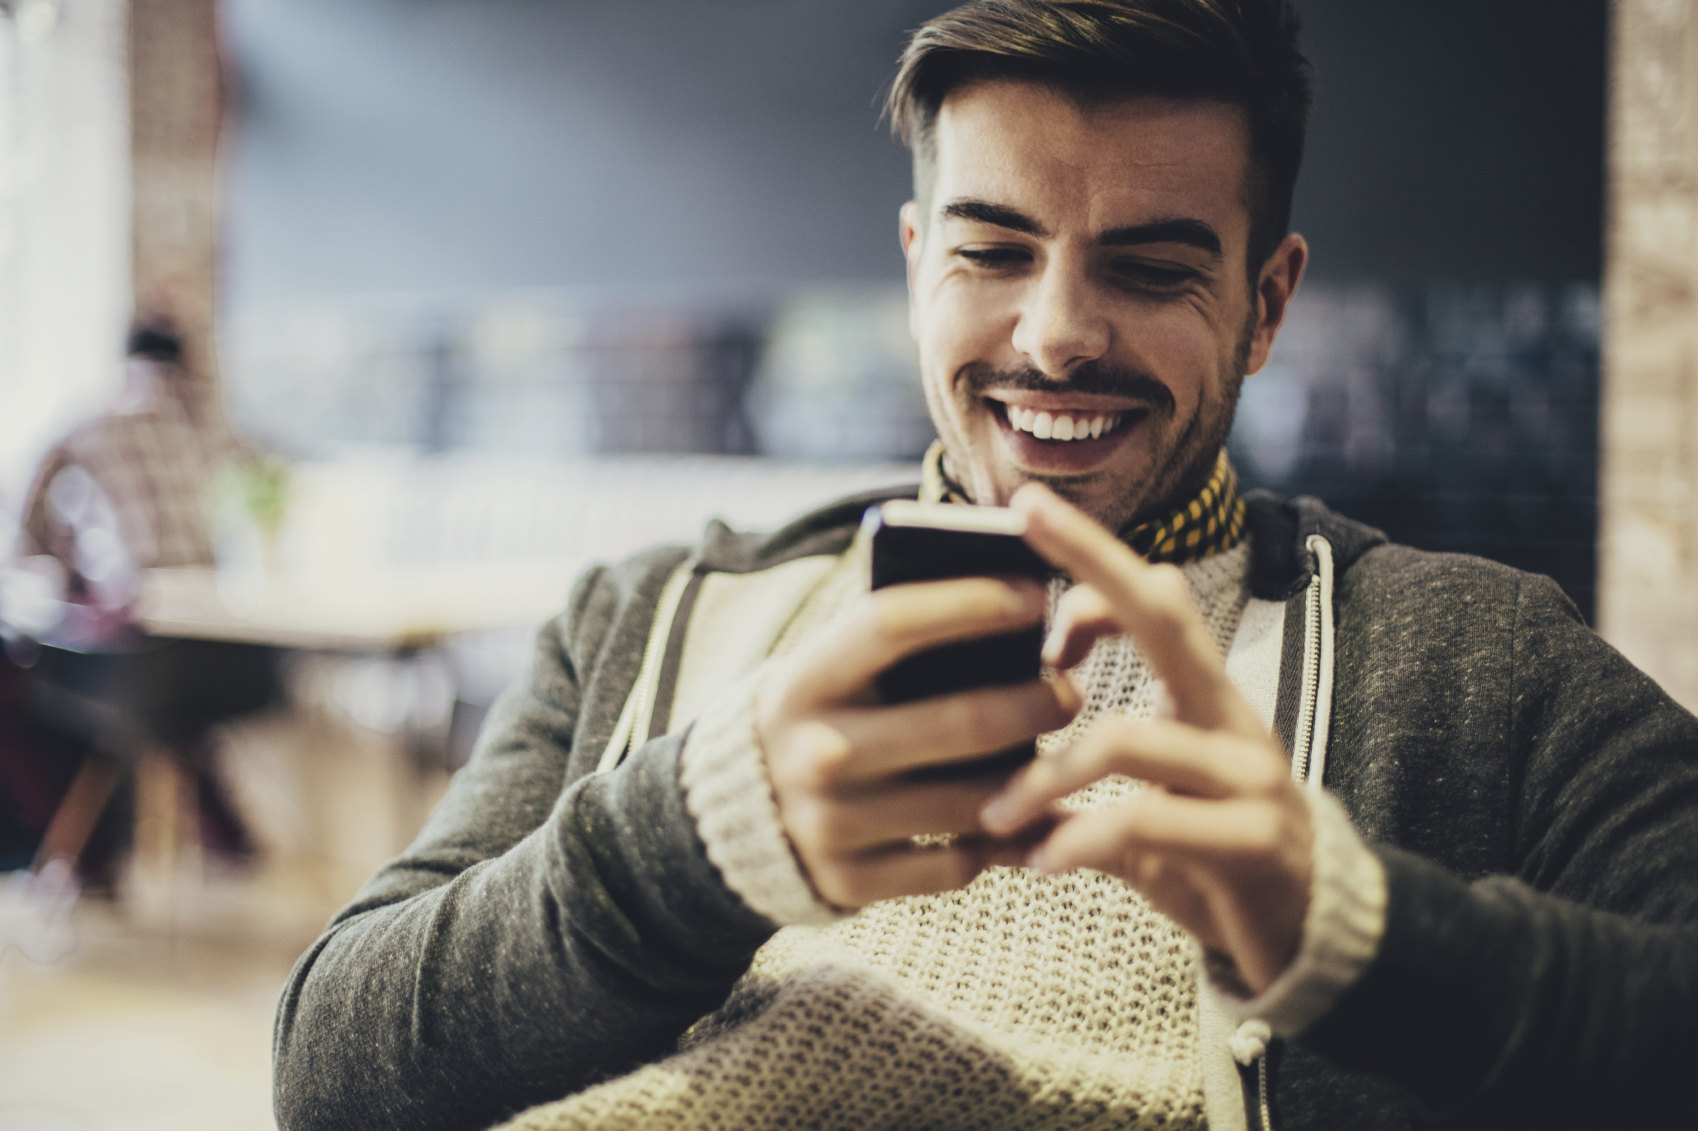 Dude smiles while looking at his smartphone